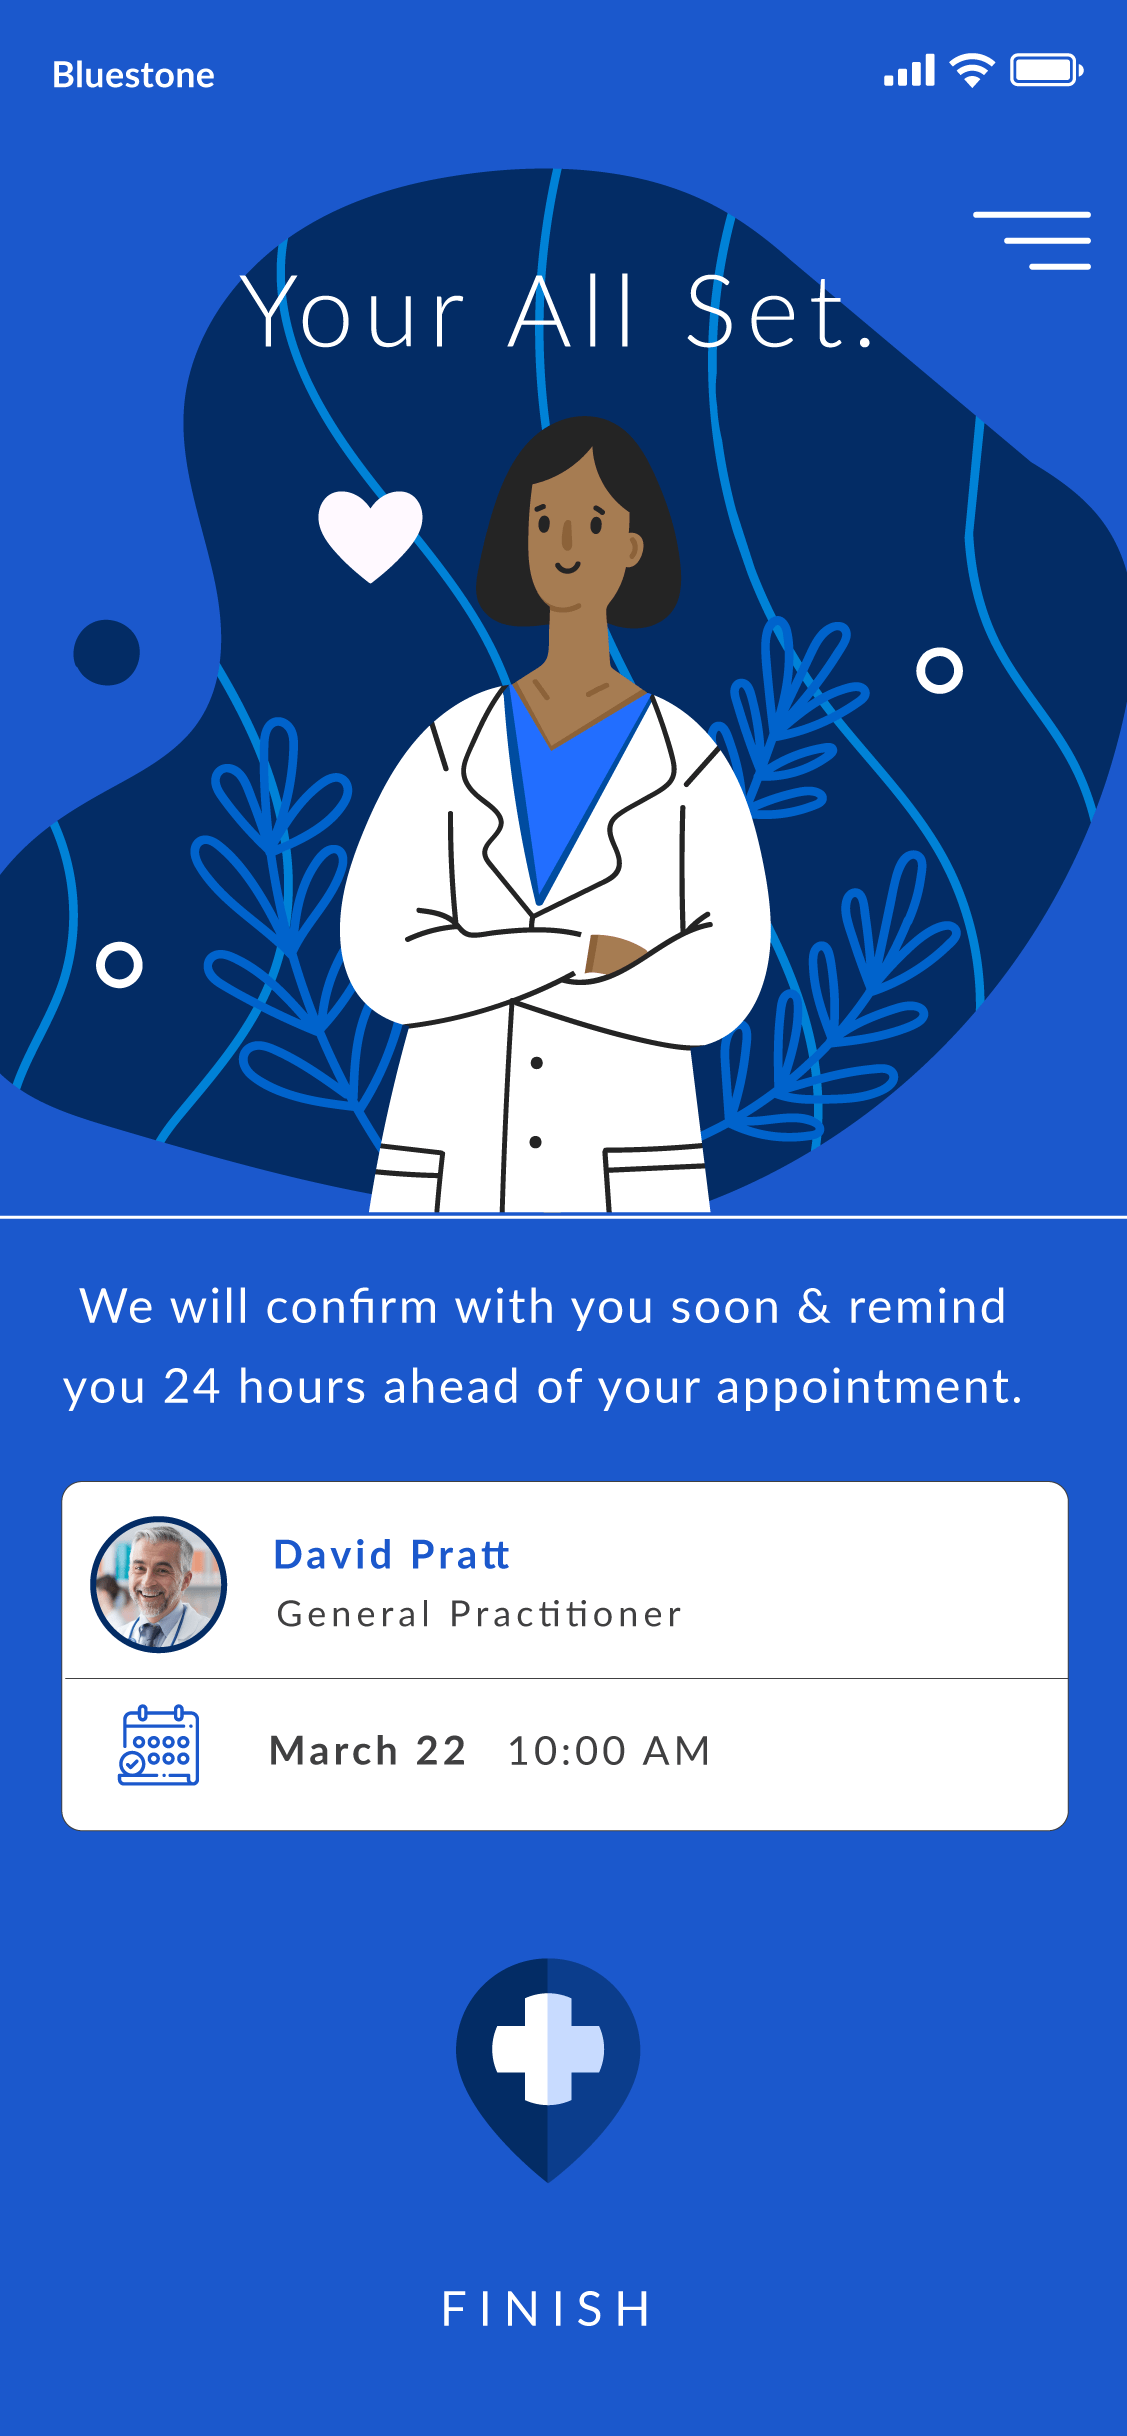 (Marketing) Telemedicine App_Artboard 3 copy